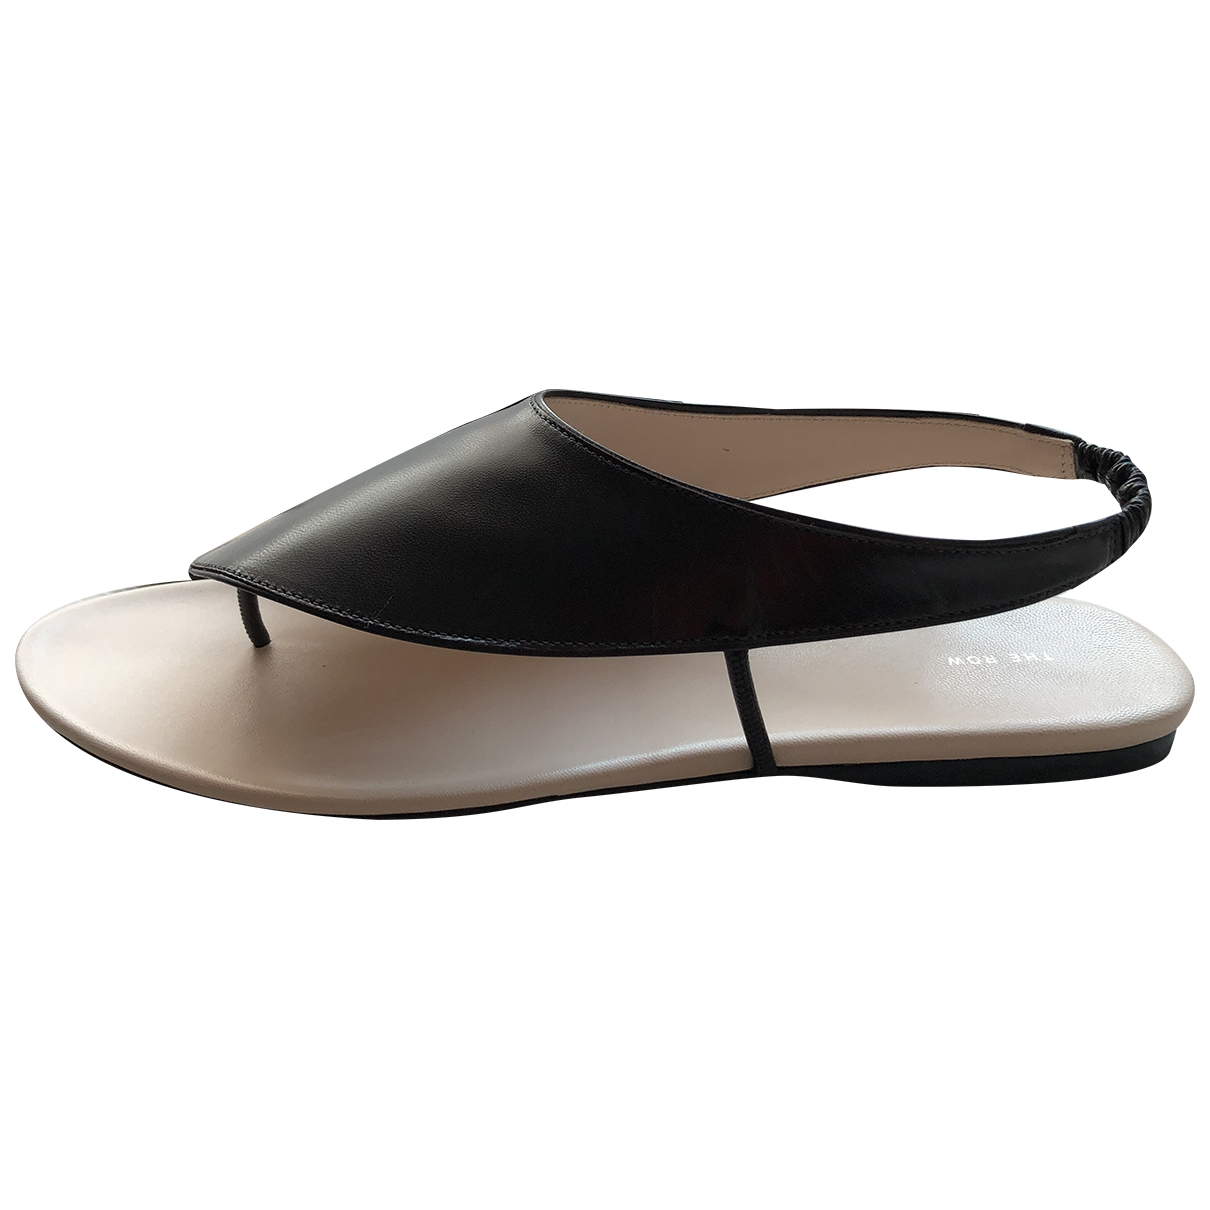 The Row Ravello Brown Leather Sandals for Women 39 EU